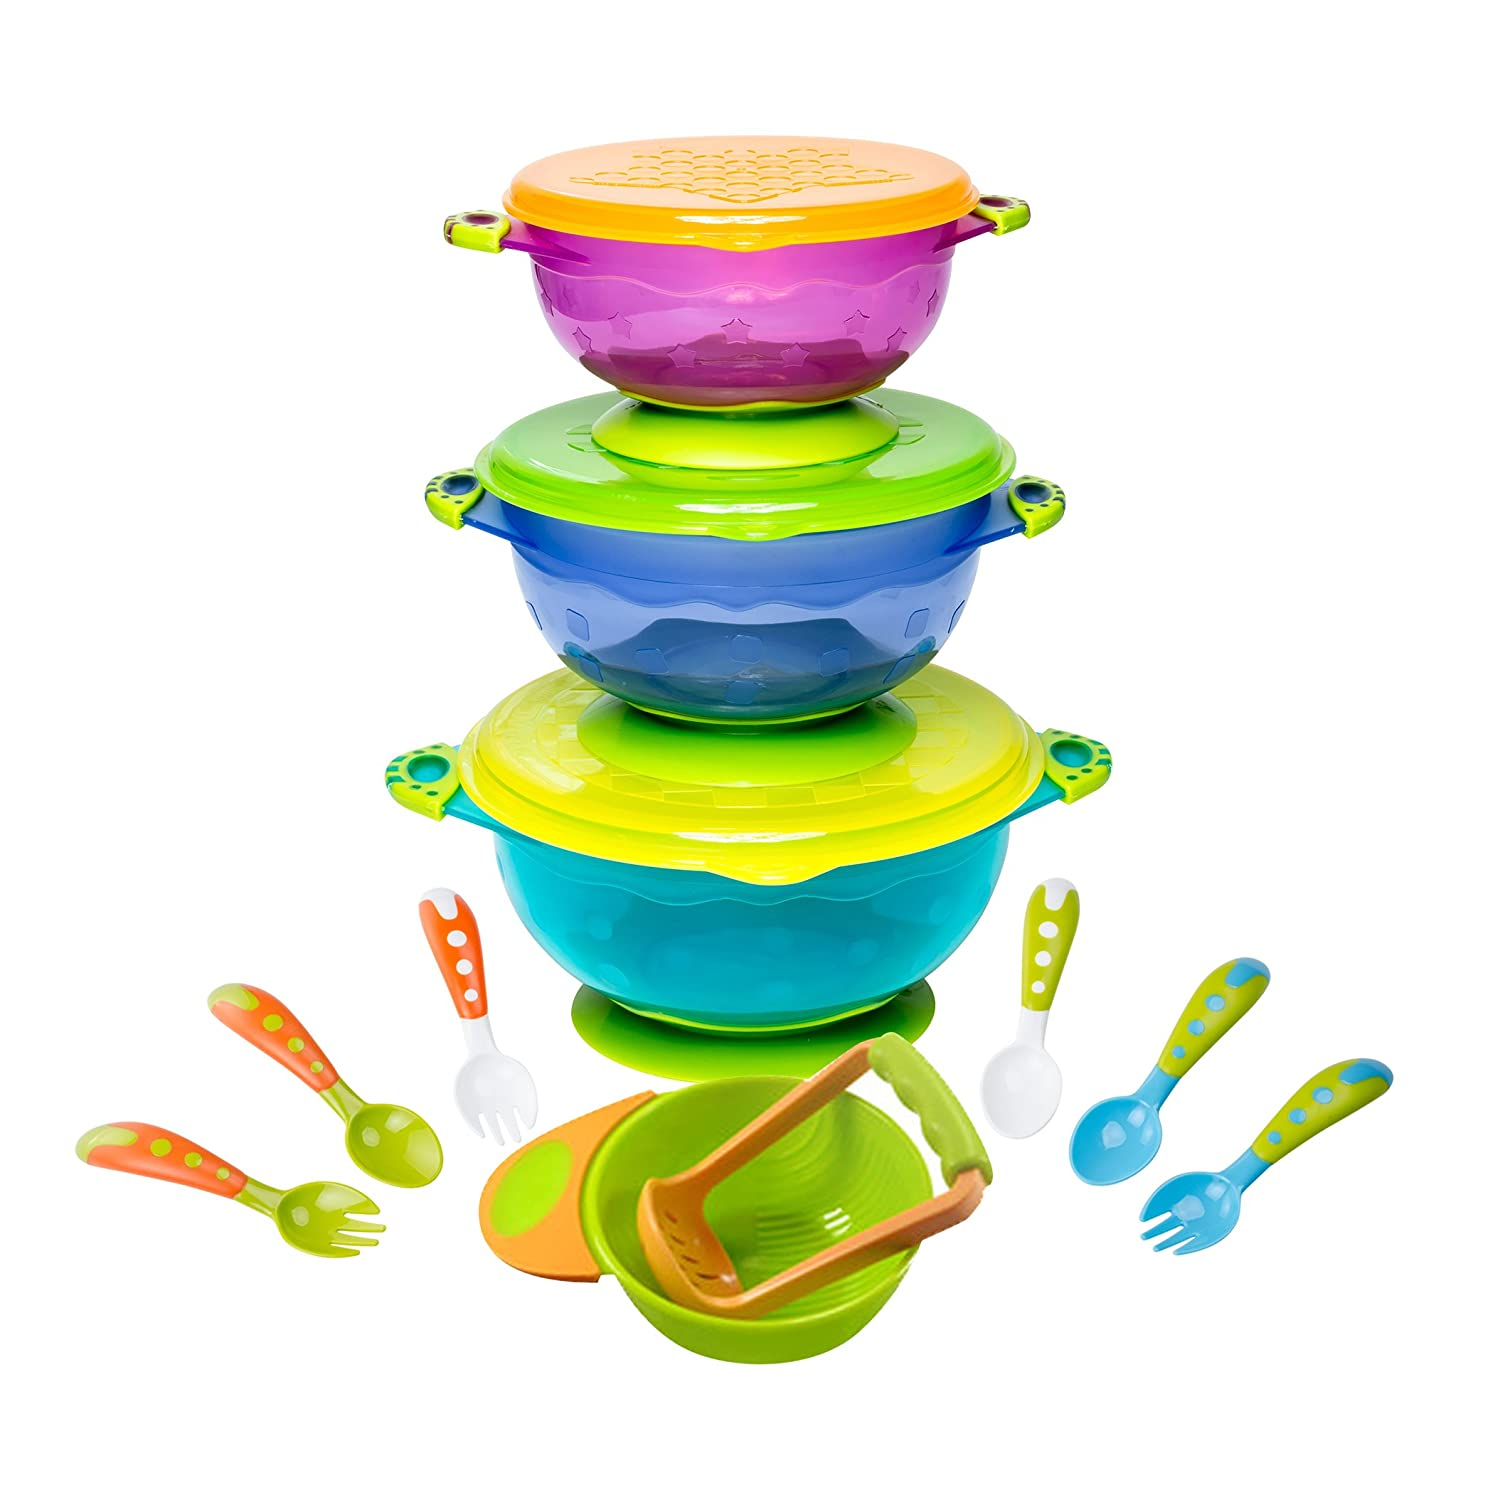 BEST SUCTION BABY BOWLS FOR TODDLERS-Toddler Bowls Baby Feeding Set with Baby Utensils   Bonus Baby Spoons and Baby Fork   To Go Baby Bowl with Secure Lids   Suction Plates   BPA Free Suction Bowl for Lullababy Babybowlset